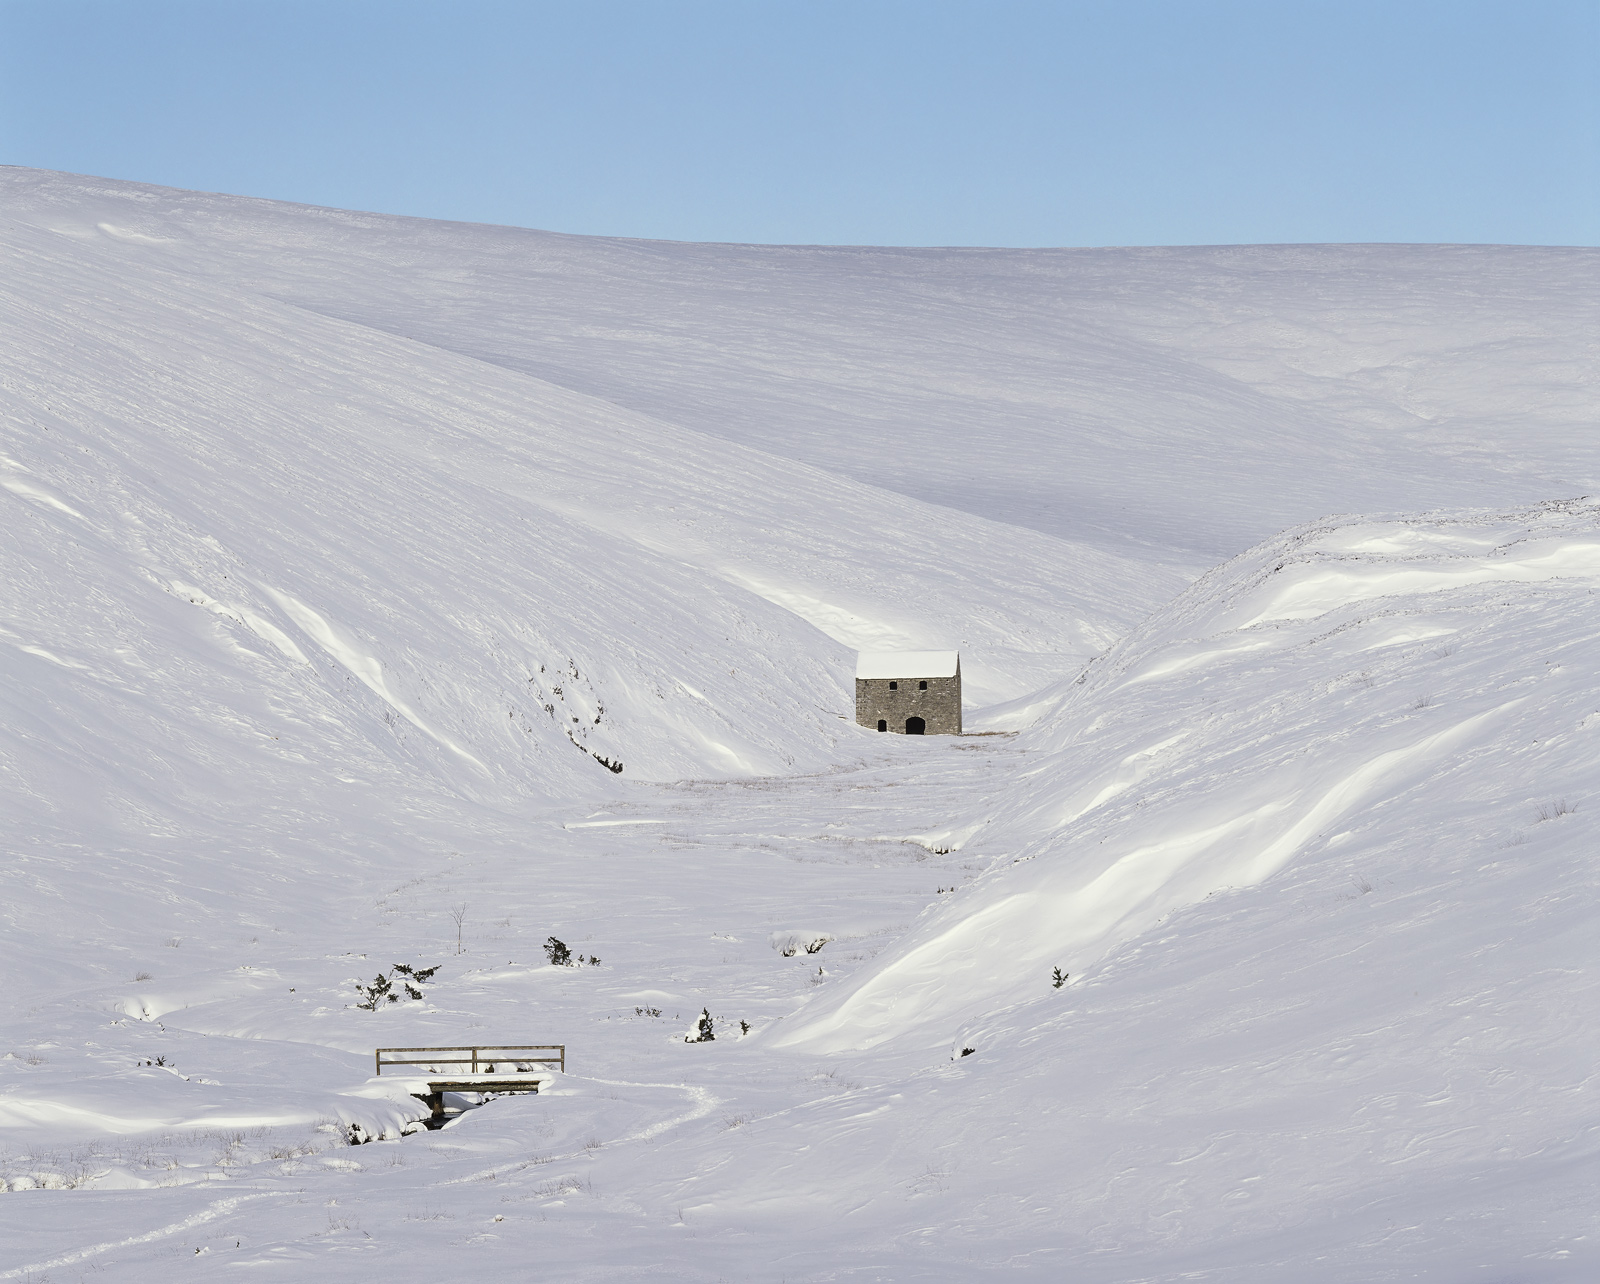 Ski resorts in Scotland are usually closed because there is no snow or because you can't physically get there when there is snow...